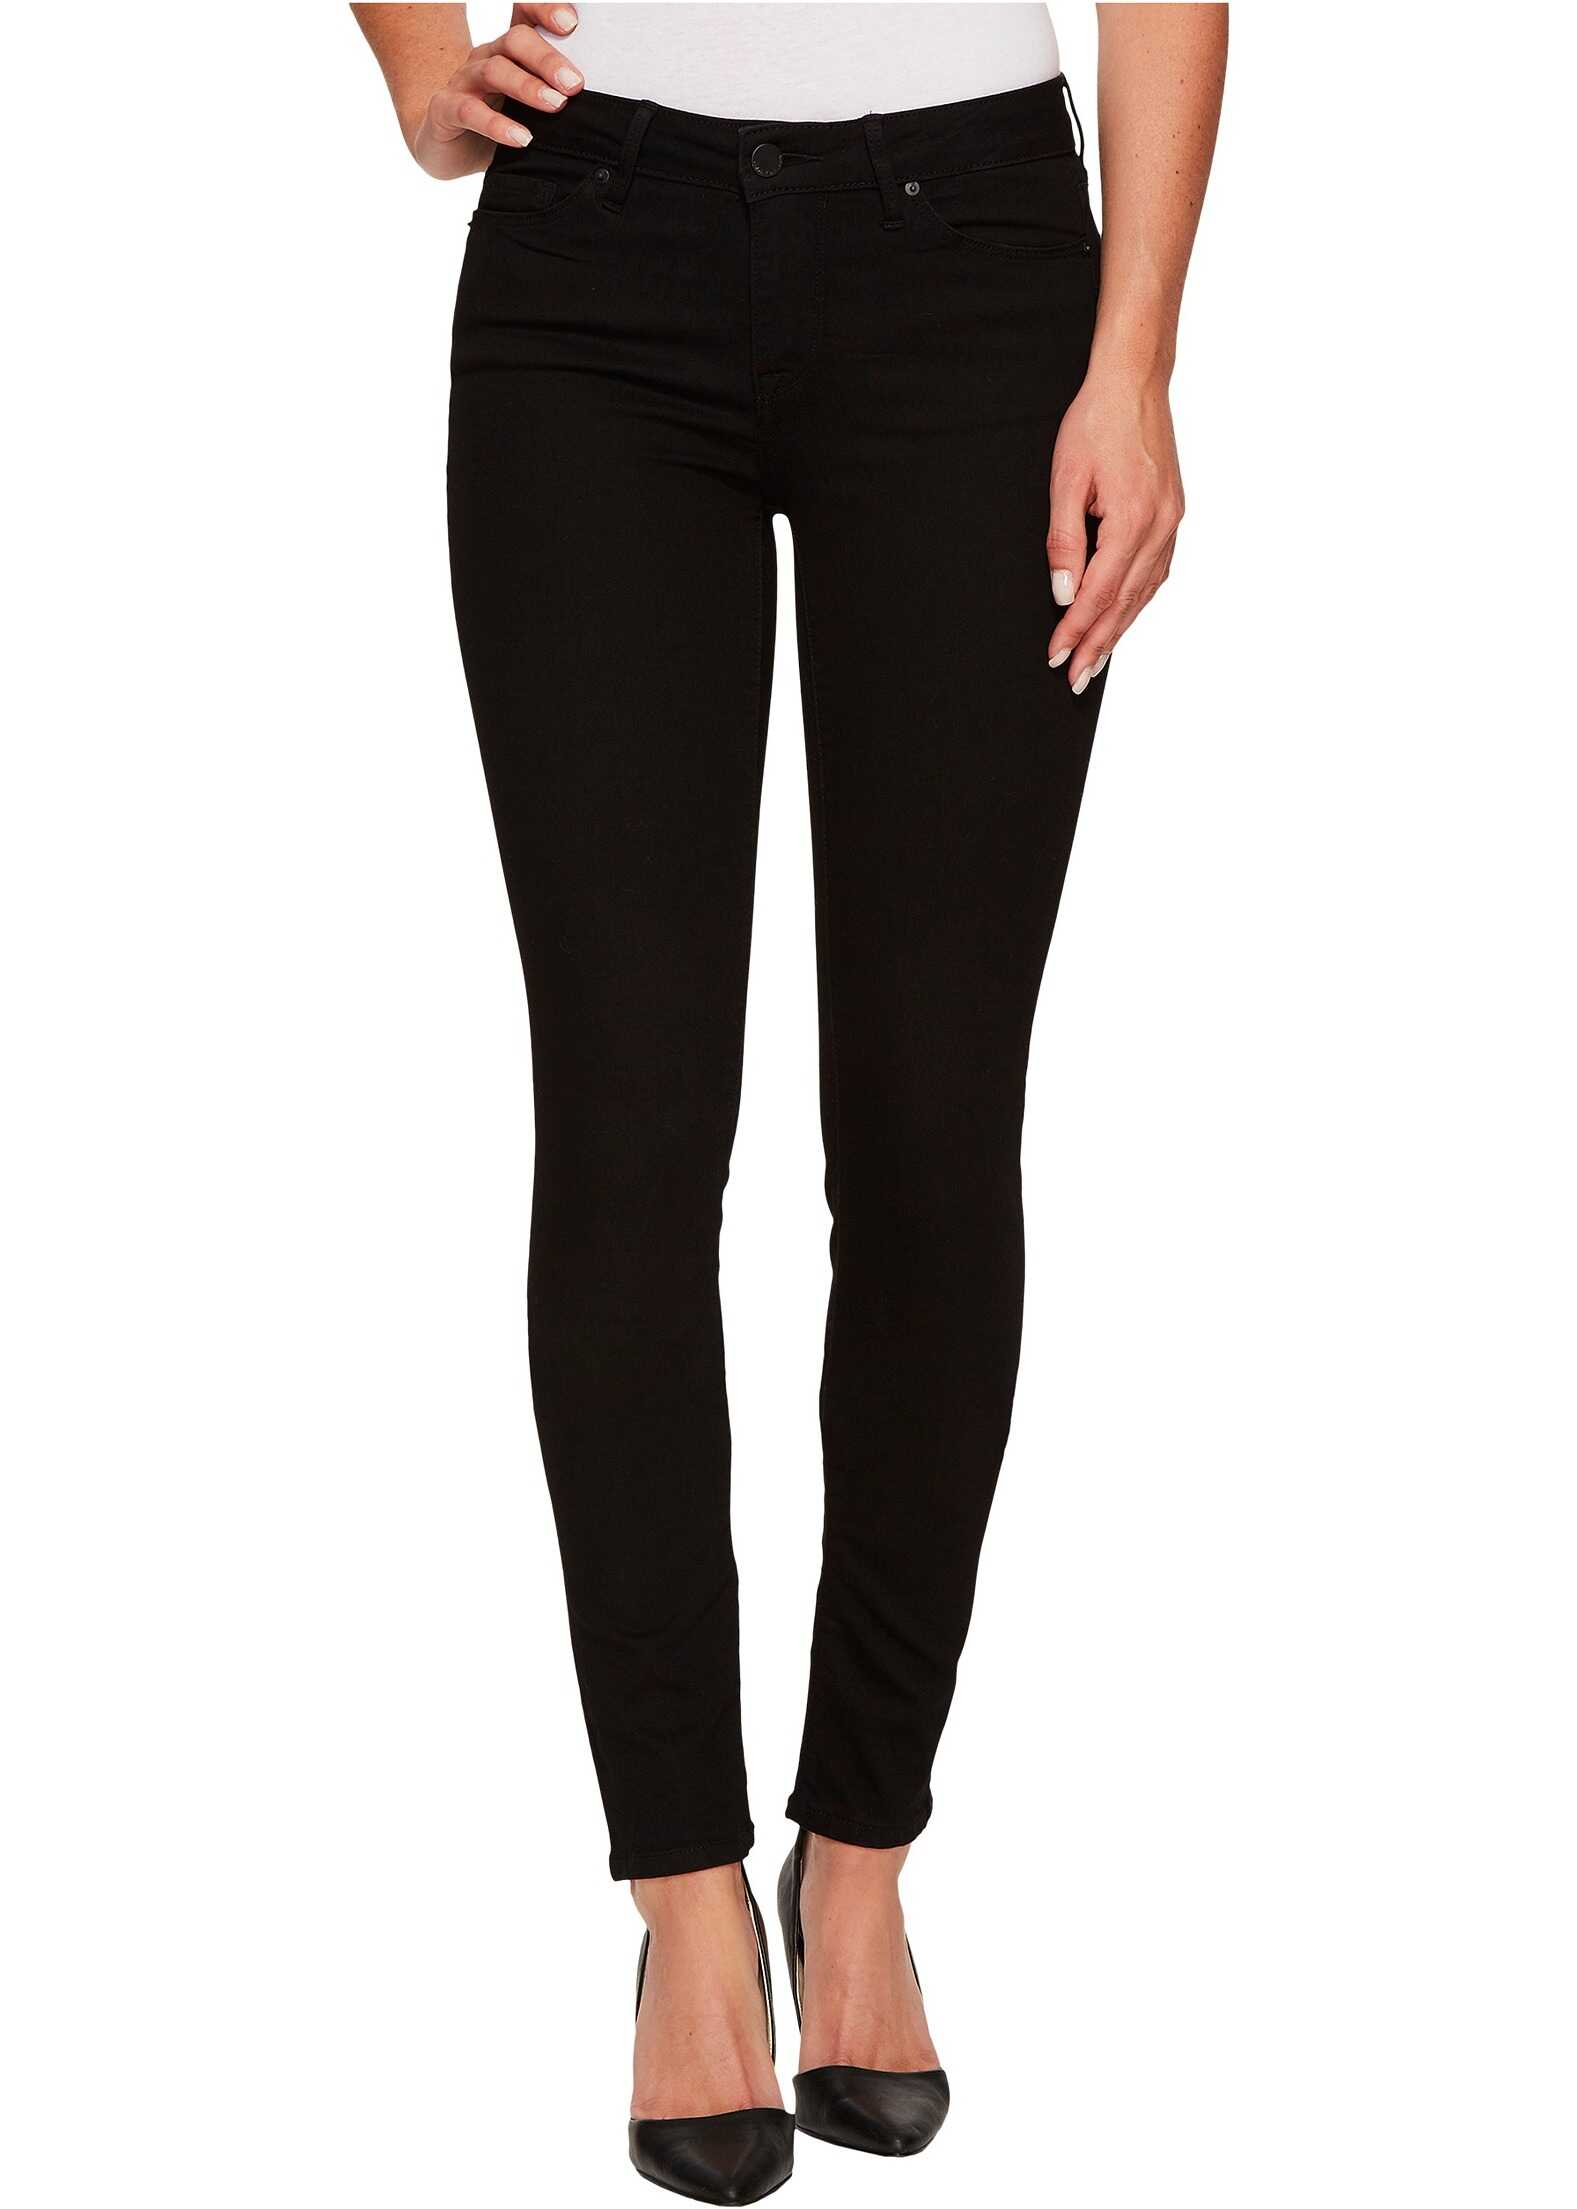 Calvin Klein Jeans Ultimate Skinny Denim in Black Black